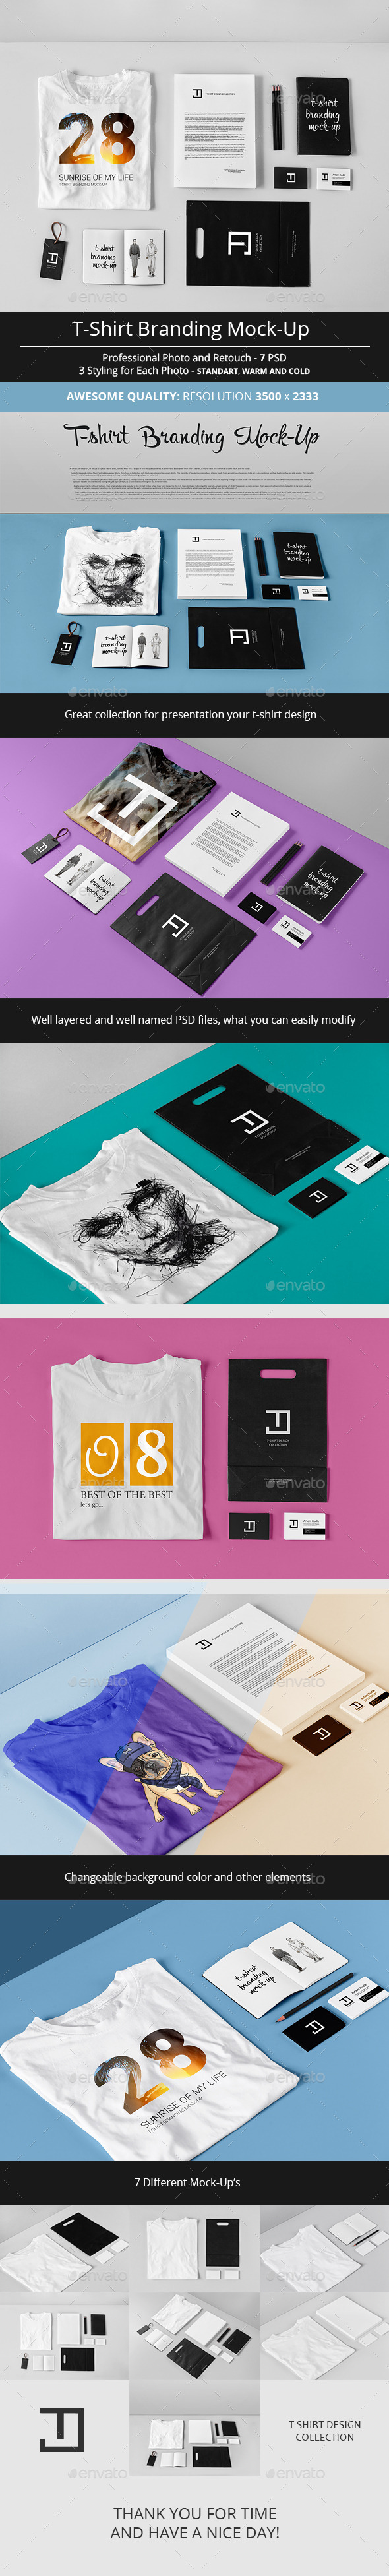 T-Shirt Branding Mock-Up - T-shirts Apparel